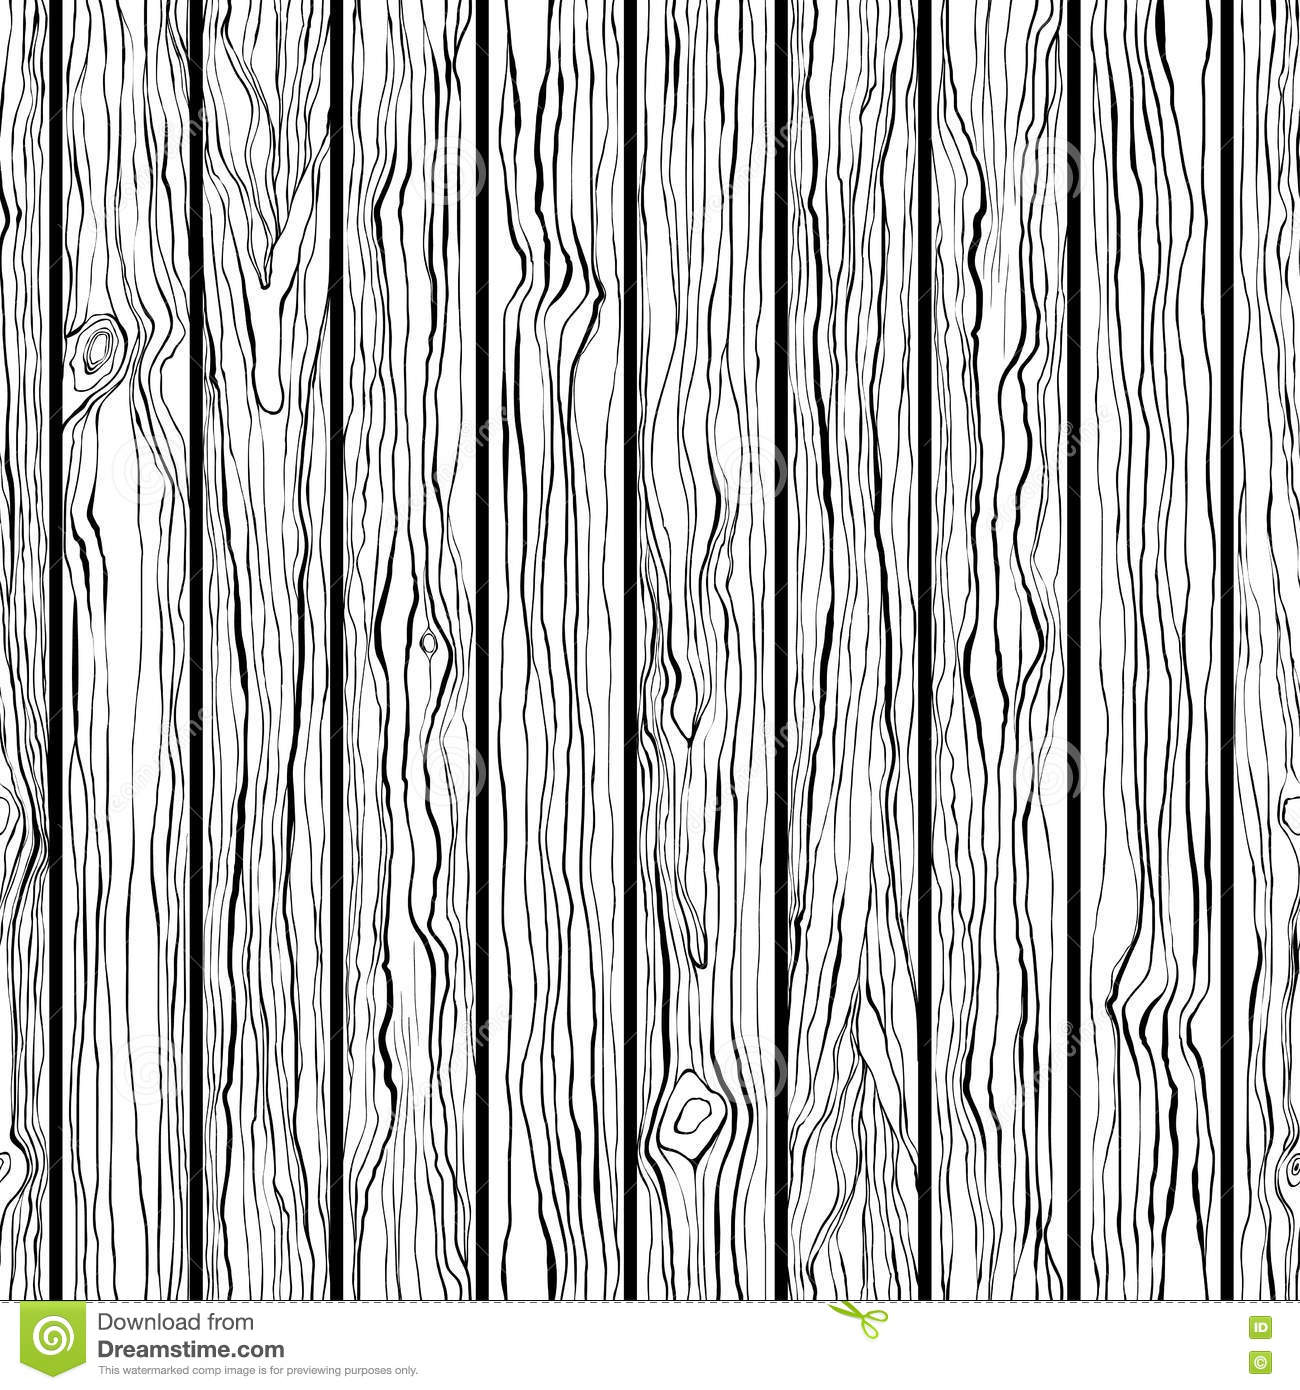 Wood Texture Seamless Pattern Black And White Hand Draw Stock